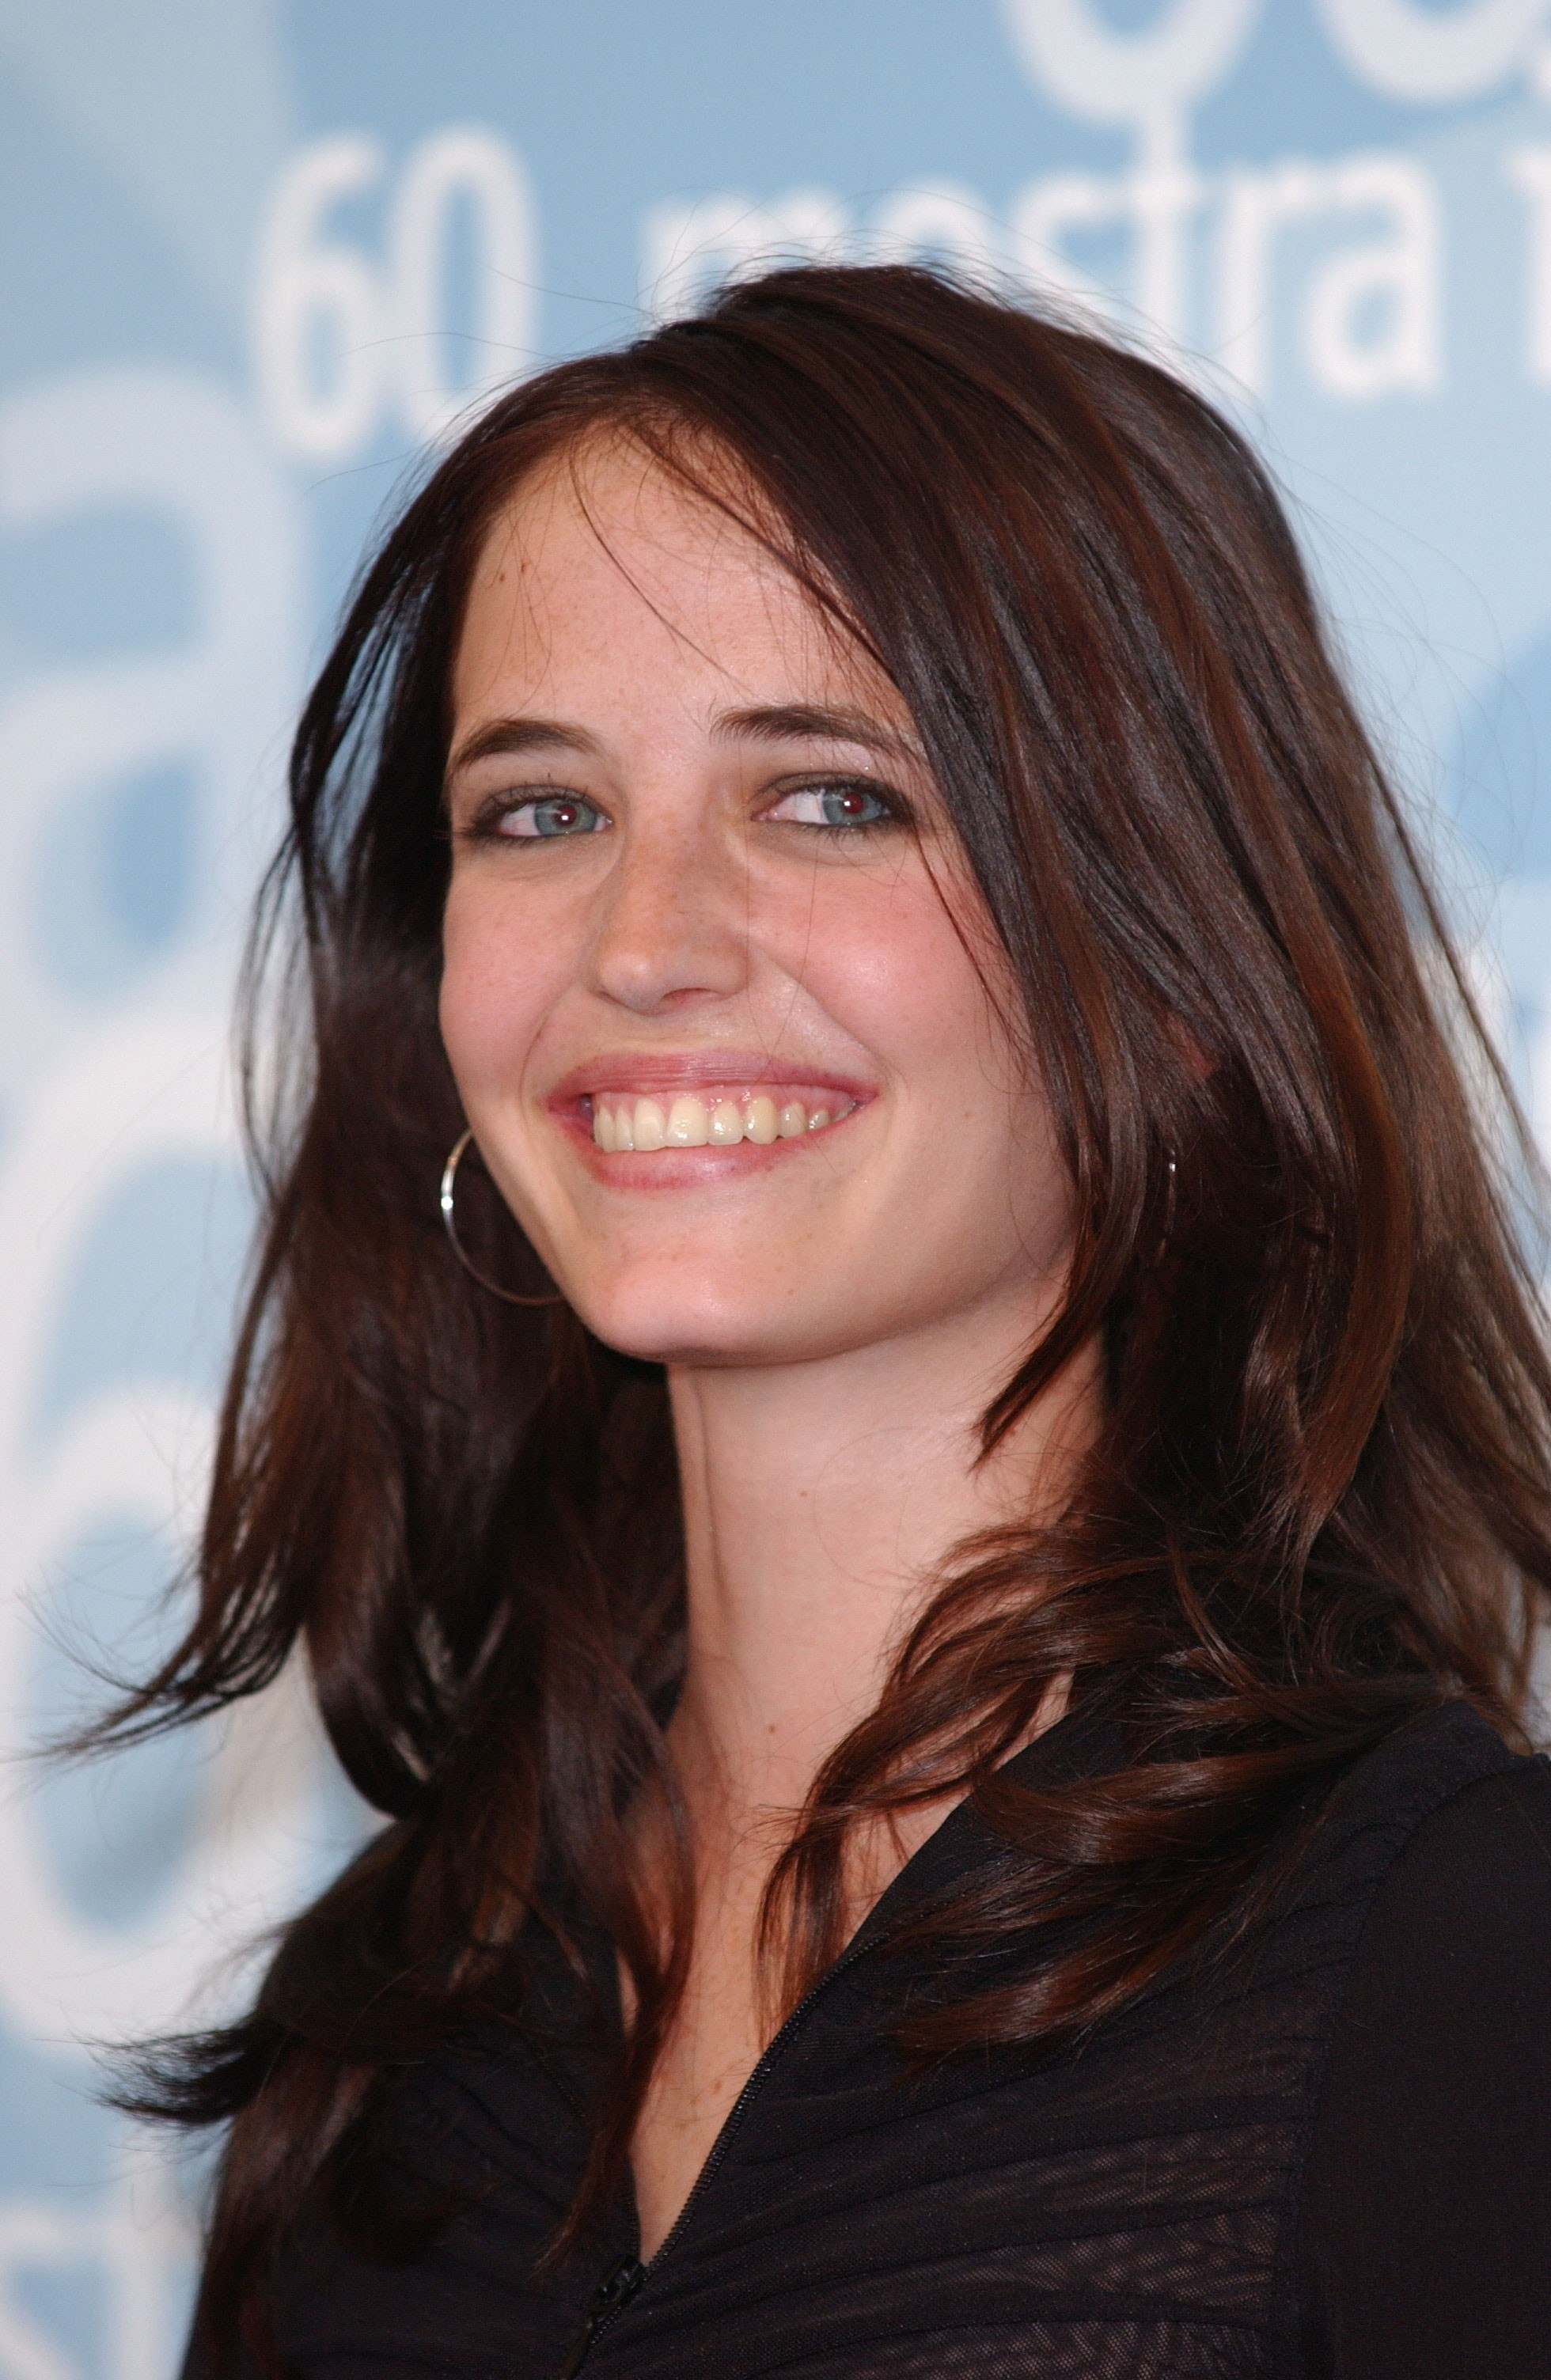 eva green 6h6Vw 25 Things You Didn't Know About The Dark Knight Rises